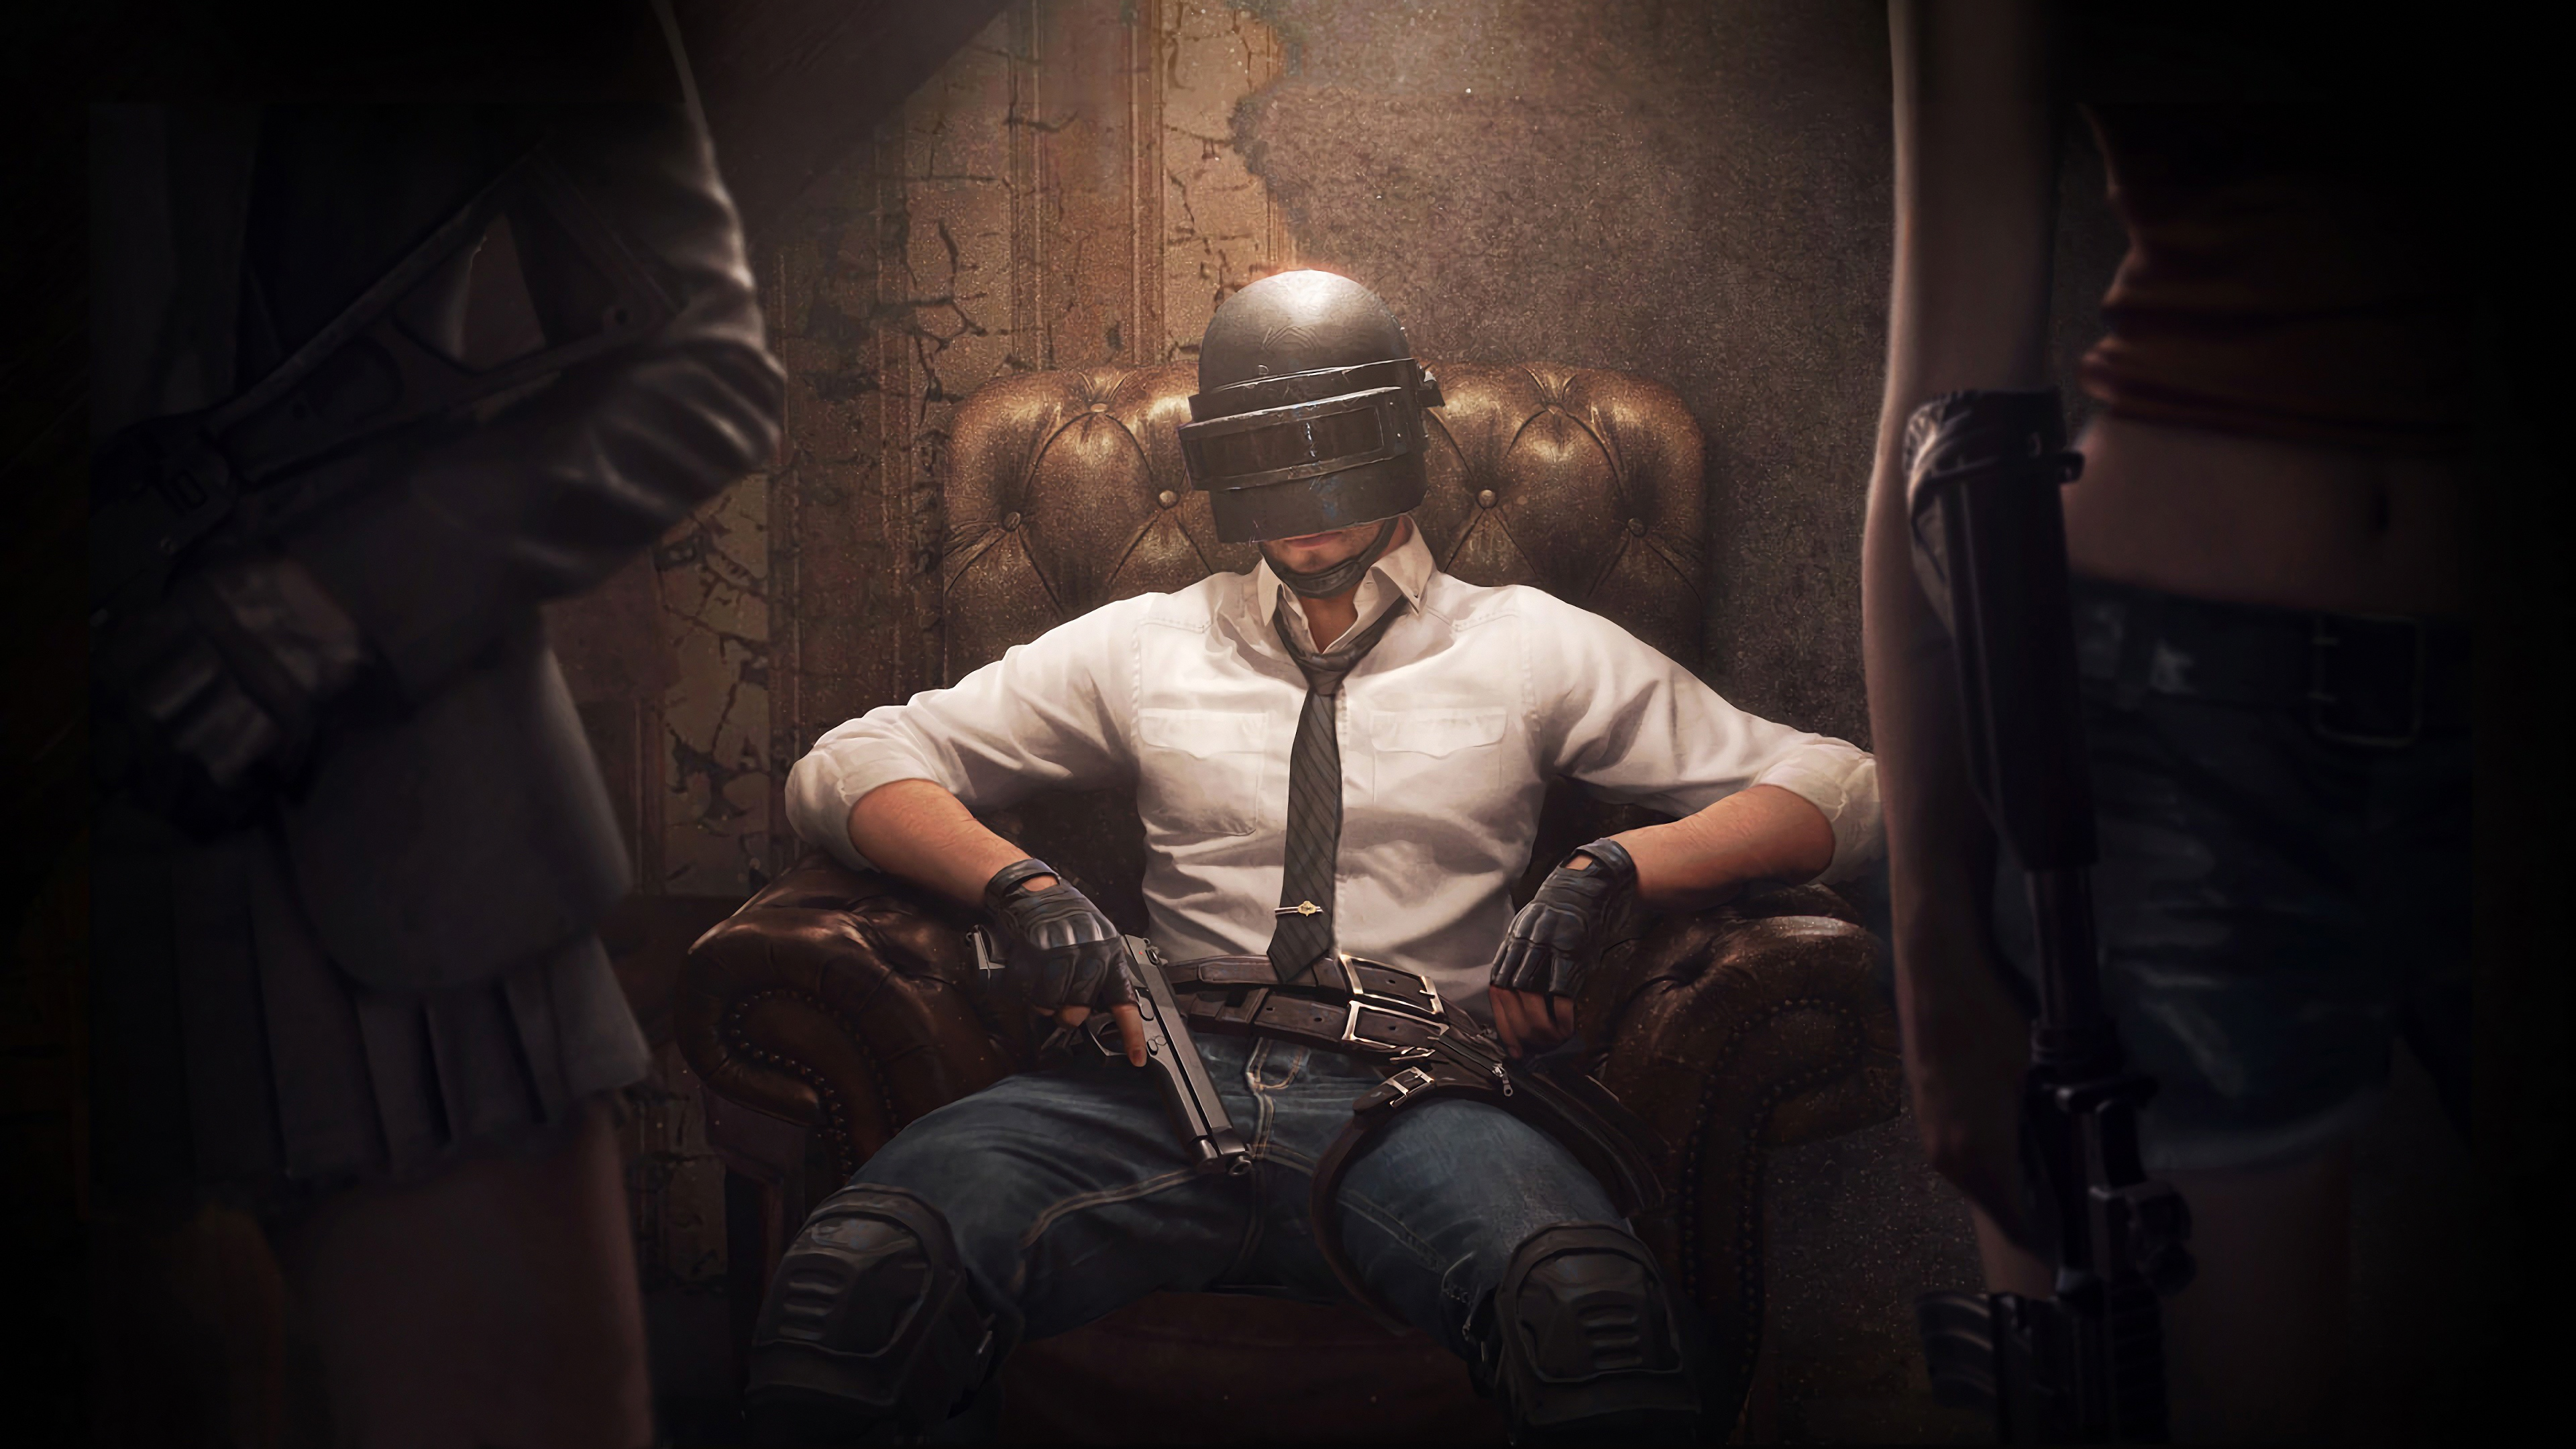 Pubg Wallpaper Hd Pc: Pubg Android Game 4k, HD Games, 4k Wallpapers, Images